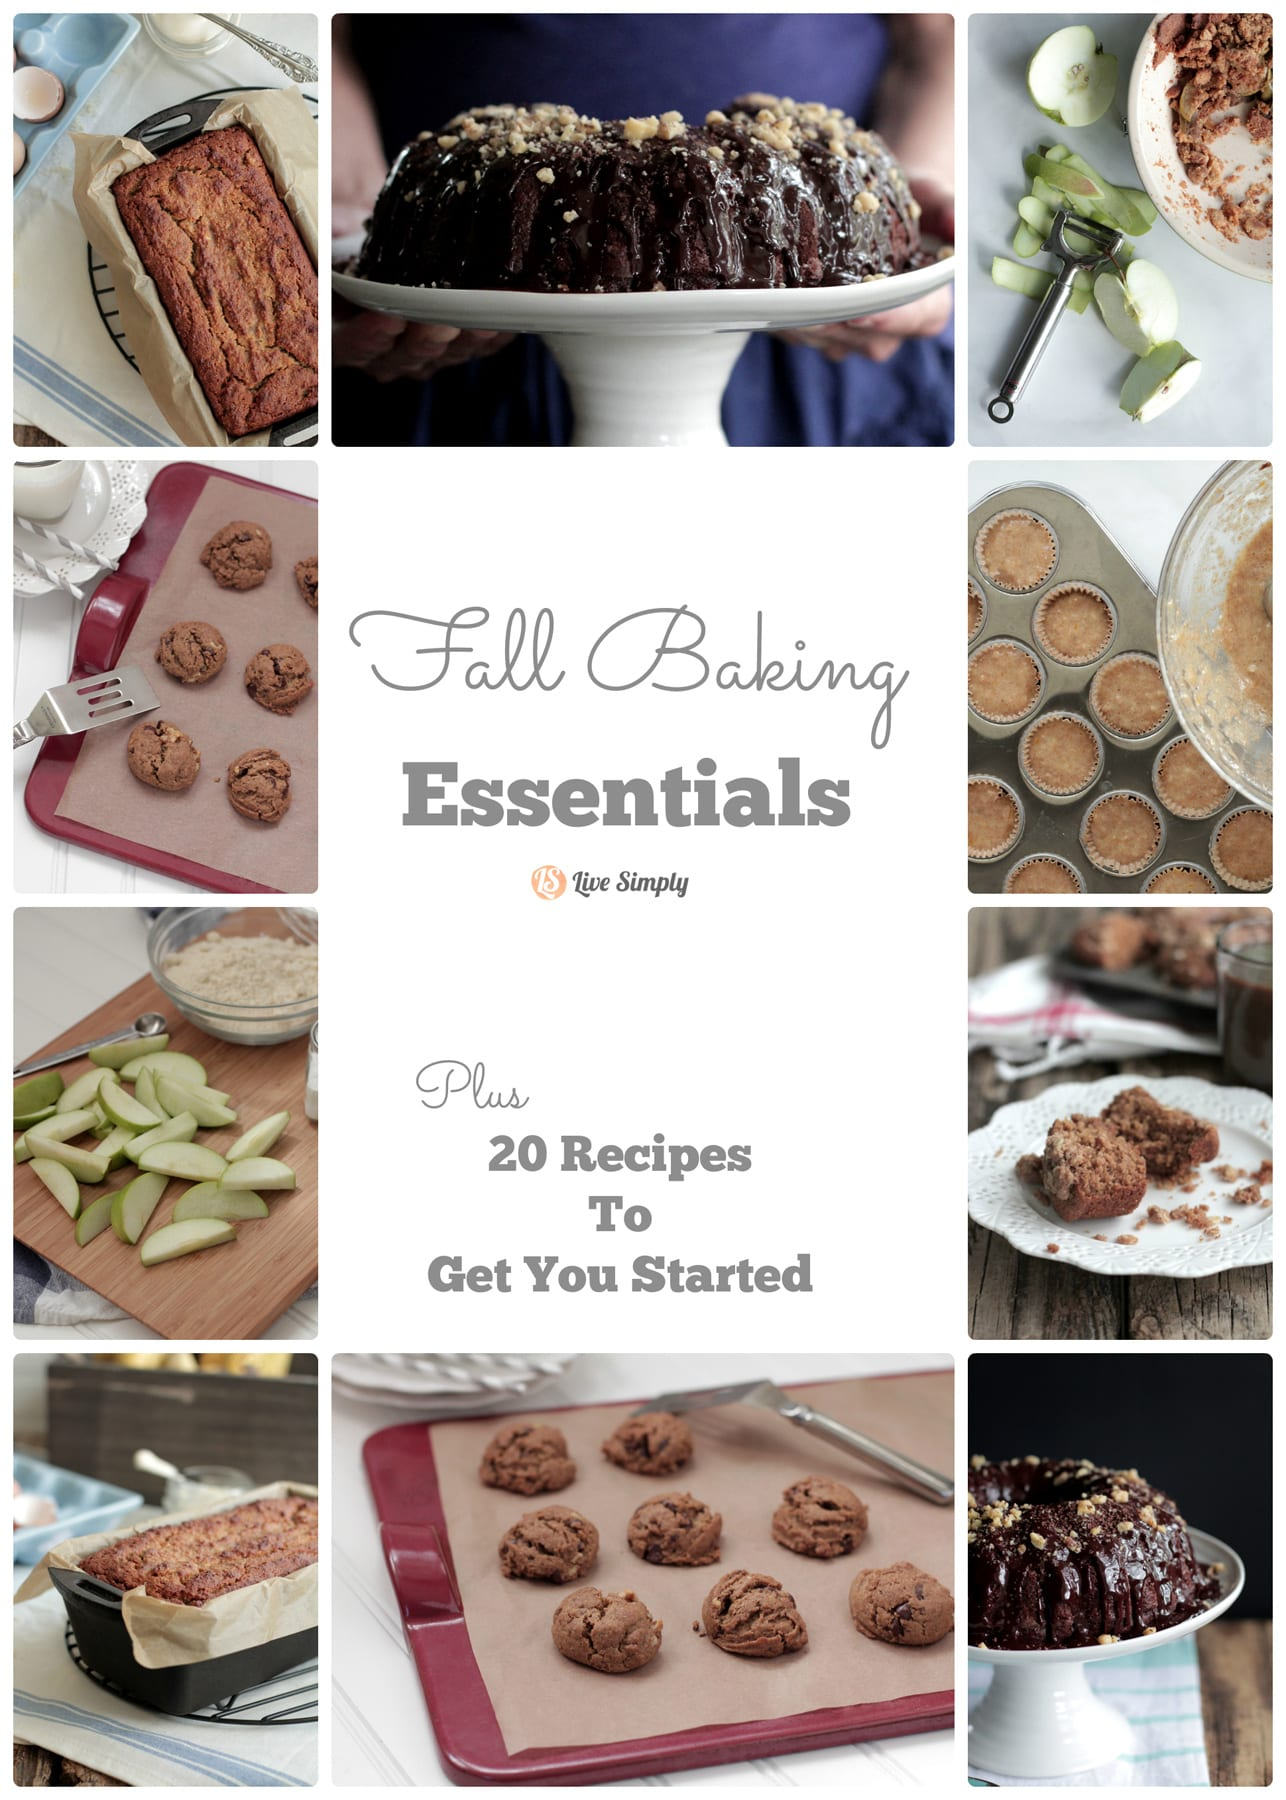 Fall Baking Essentials & 20 Recipes to Get You Started + A $250 Giveaway